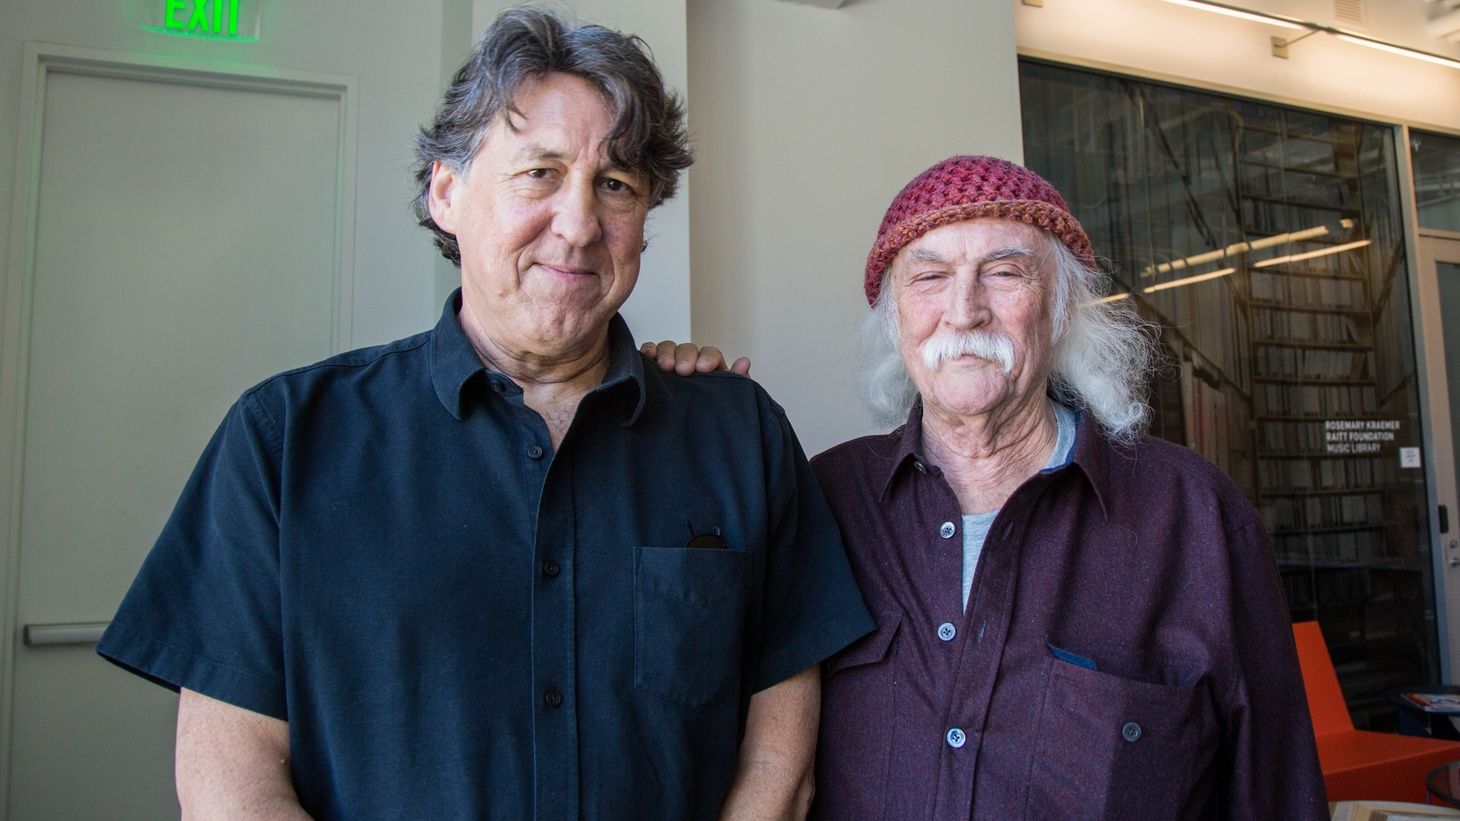 Cameron Crowe and David Cosby at KCRW.